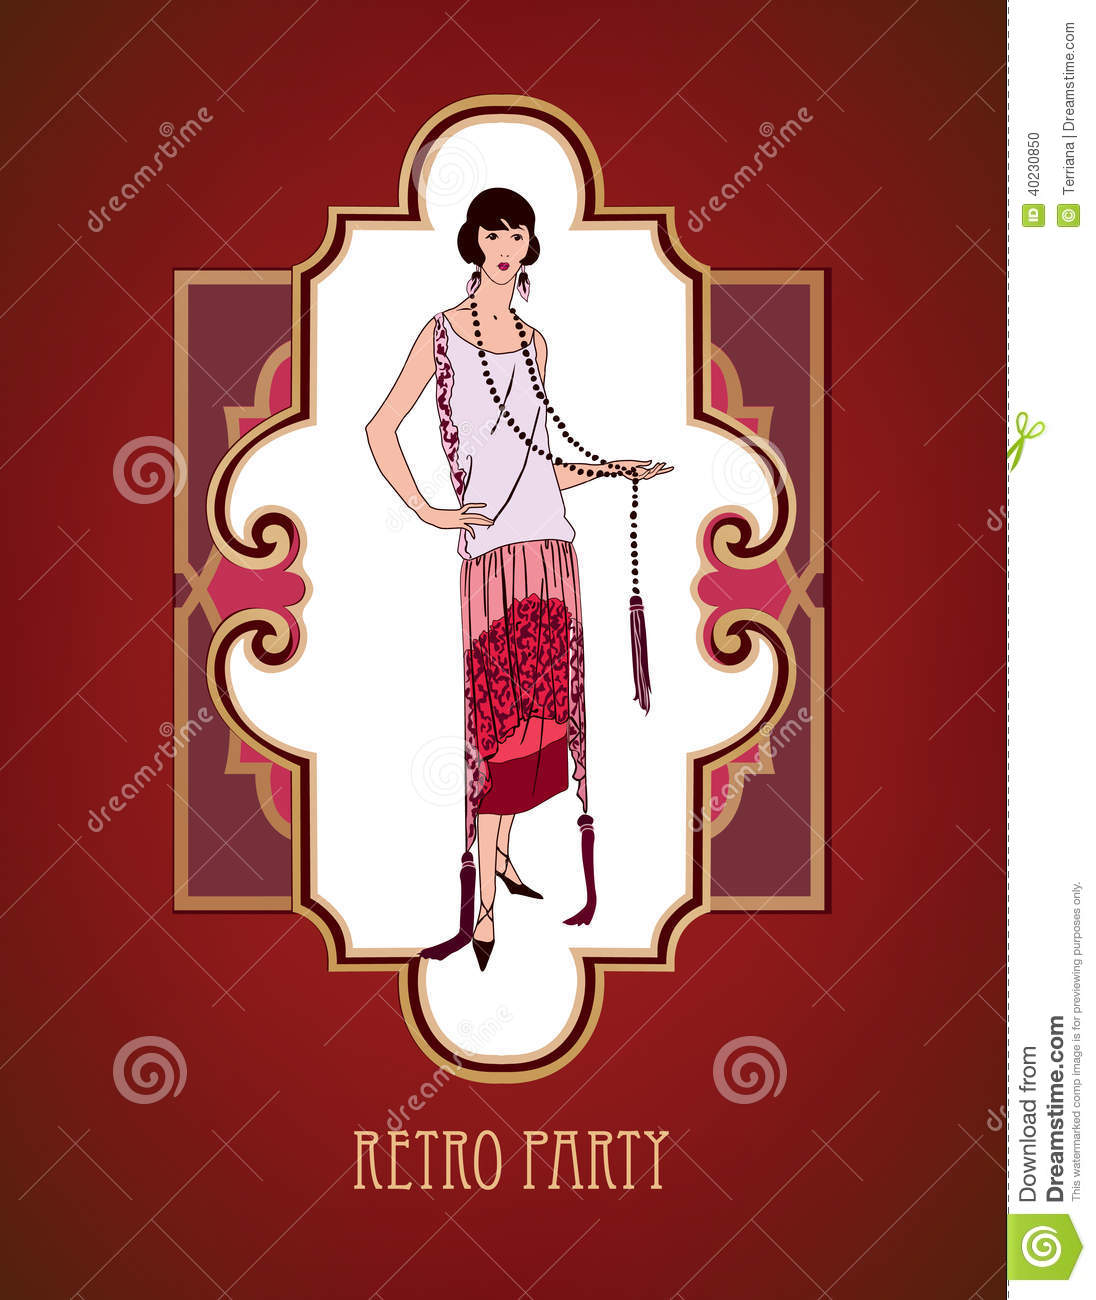 retro art deco background girl in 1930s fashion style stock vector image 40230850. Black Bedroom Furniture Sets. Home Design Ideas